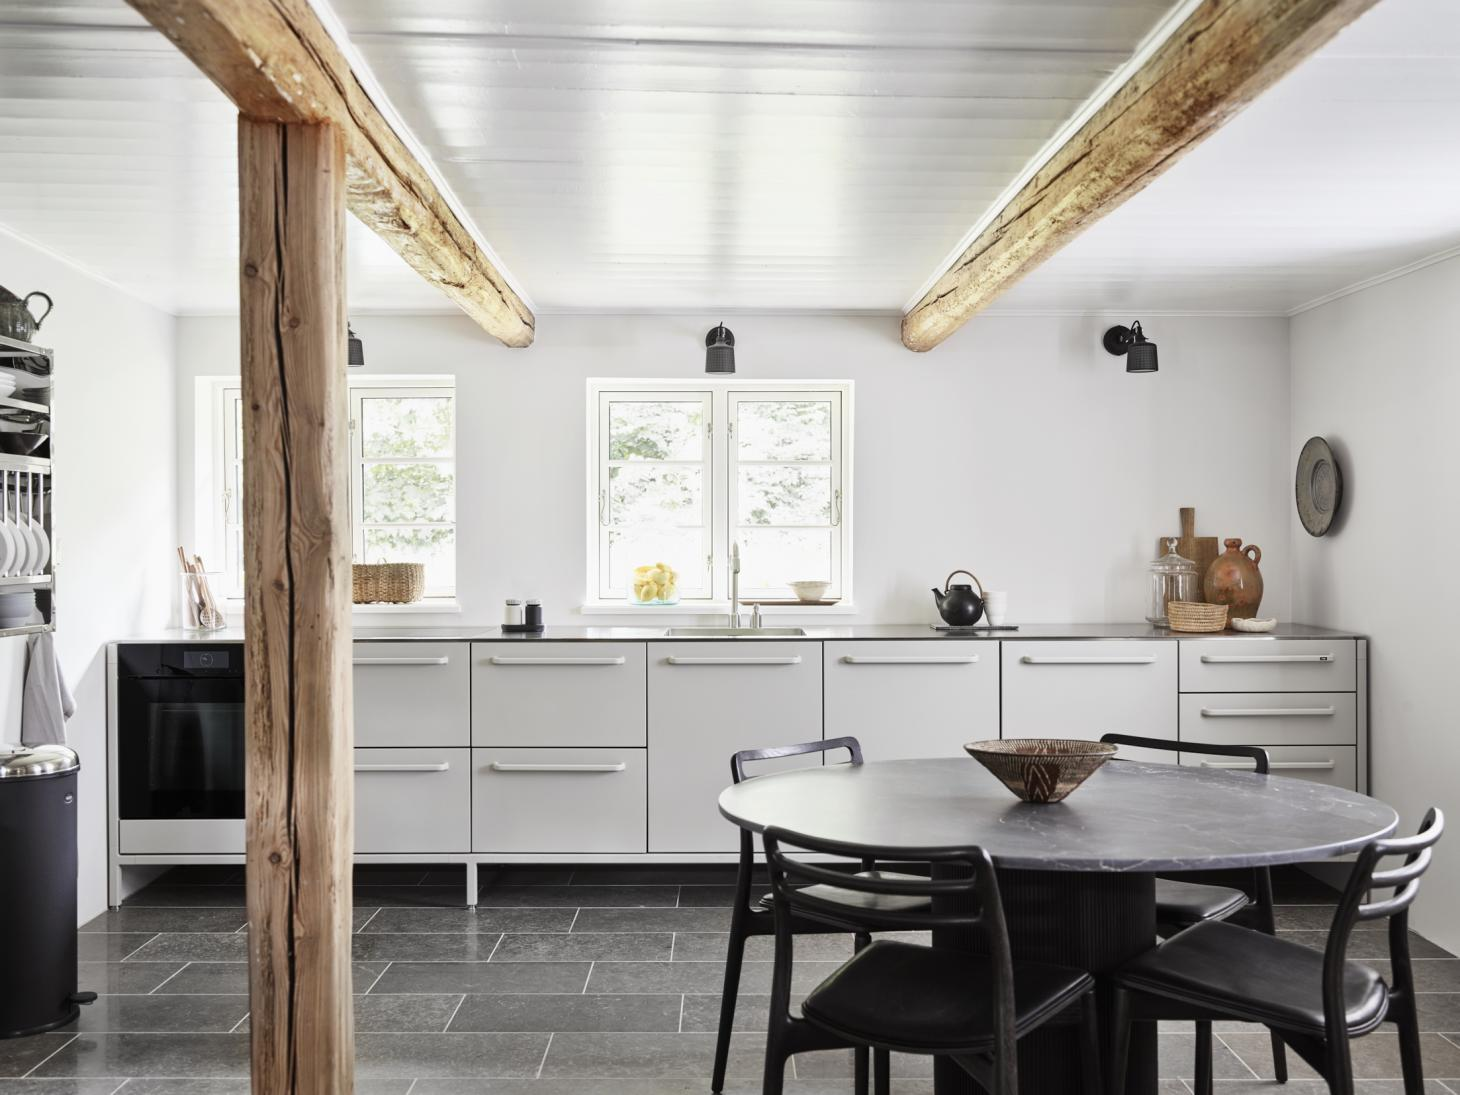 The light-filled kitchen inside the Vipp Farmhouse with a sleek grey aluminium kitchen, round black table and original wooden columns